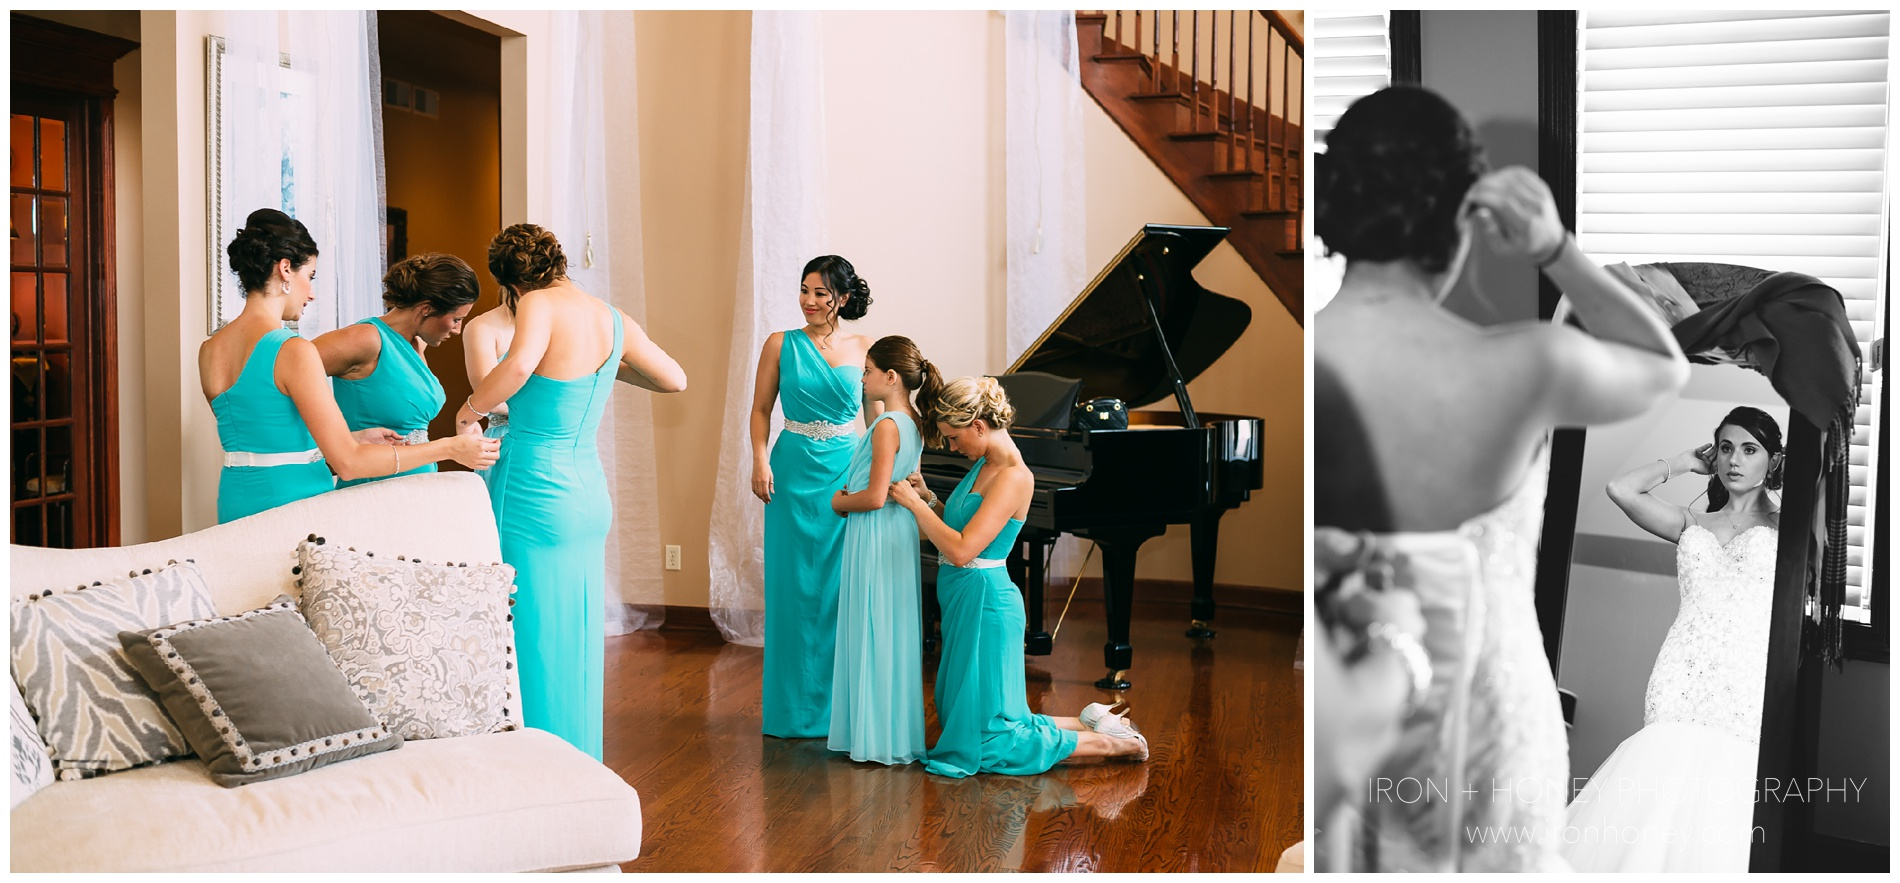 best bridal preparation photos, how to get the best bridal preparation photos, bridal prep, bridal preparation, bridal details, texture photos, iron and honey, melissa ferrara, chicago wedding photographer, wedding photographer, wedding photography, chicago, chicagoland, northwest indiana,